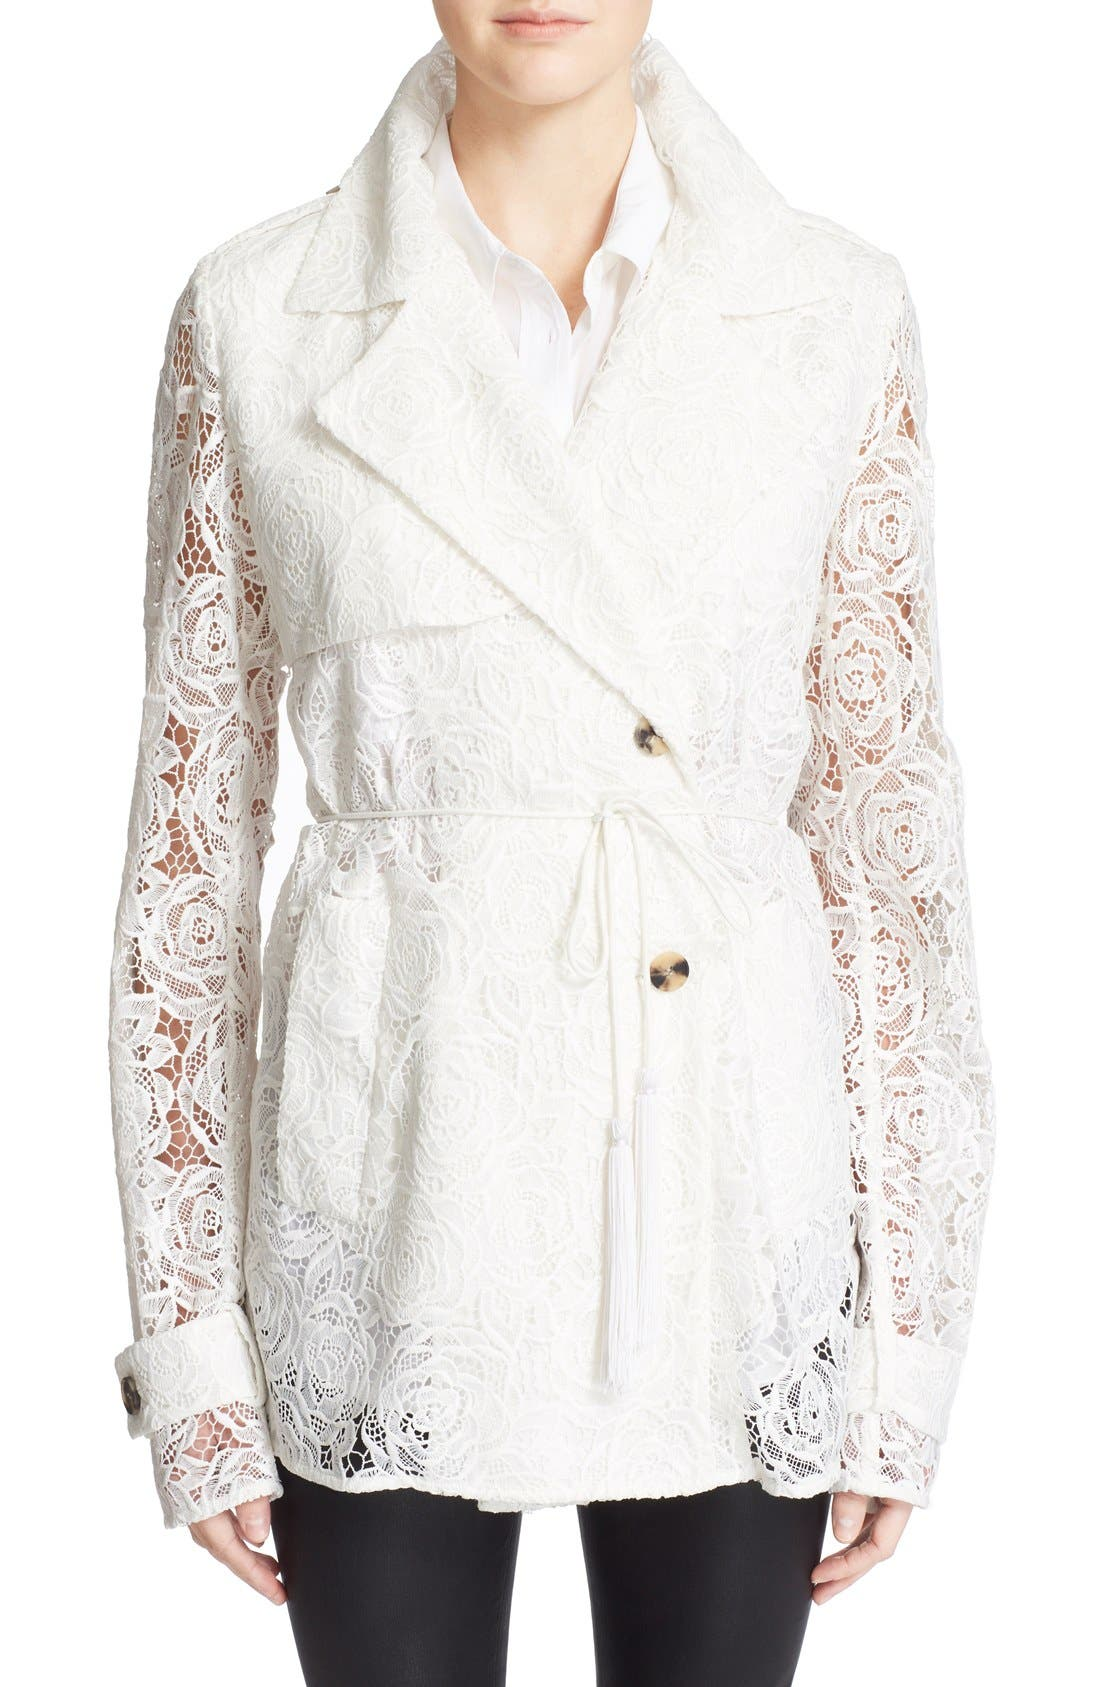 Main Image - McQ Alexander McQueen Drawstring Floral Lace Trench